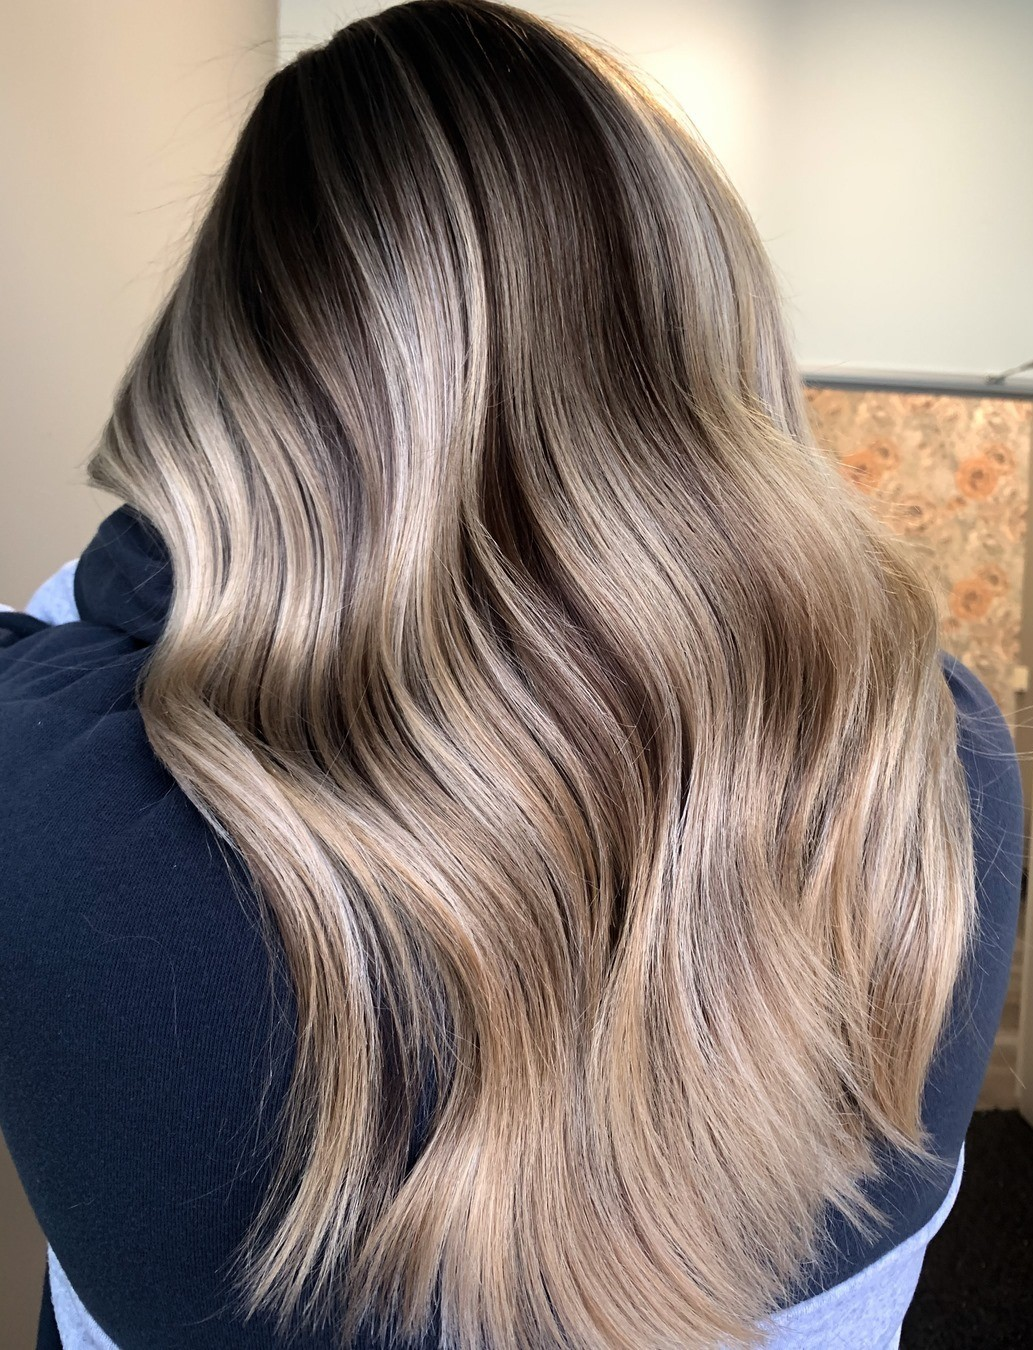 Dark Shadow Roots and Blonde Lengths